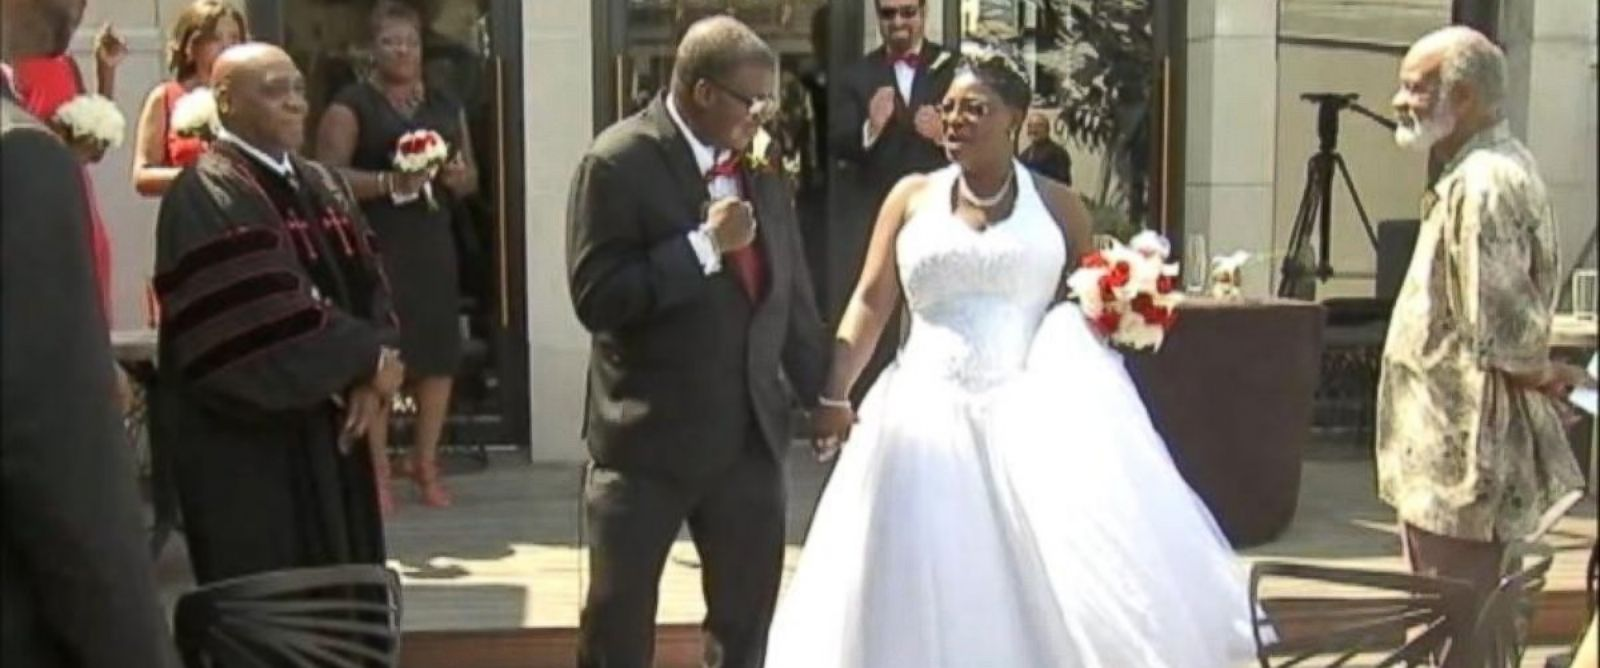 new jersey couple marries when cancer threatens to tear